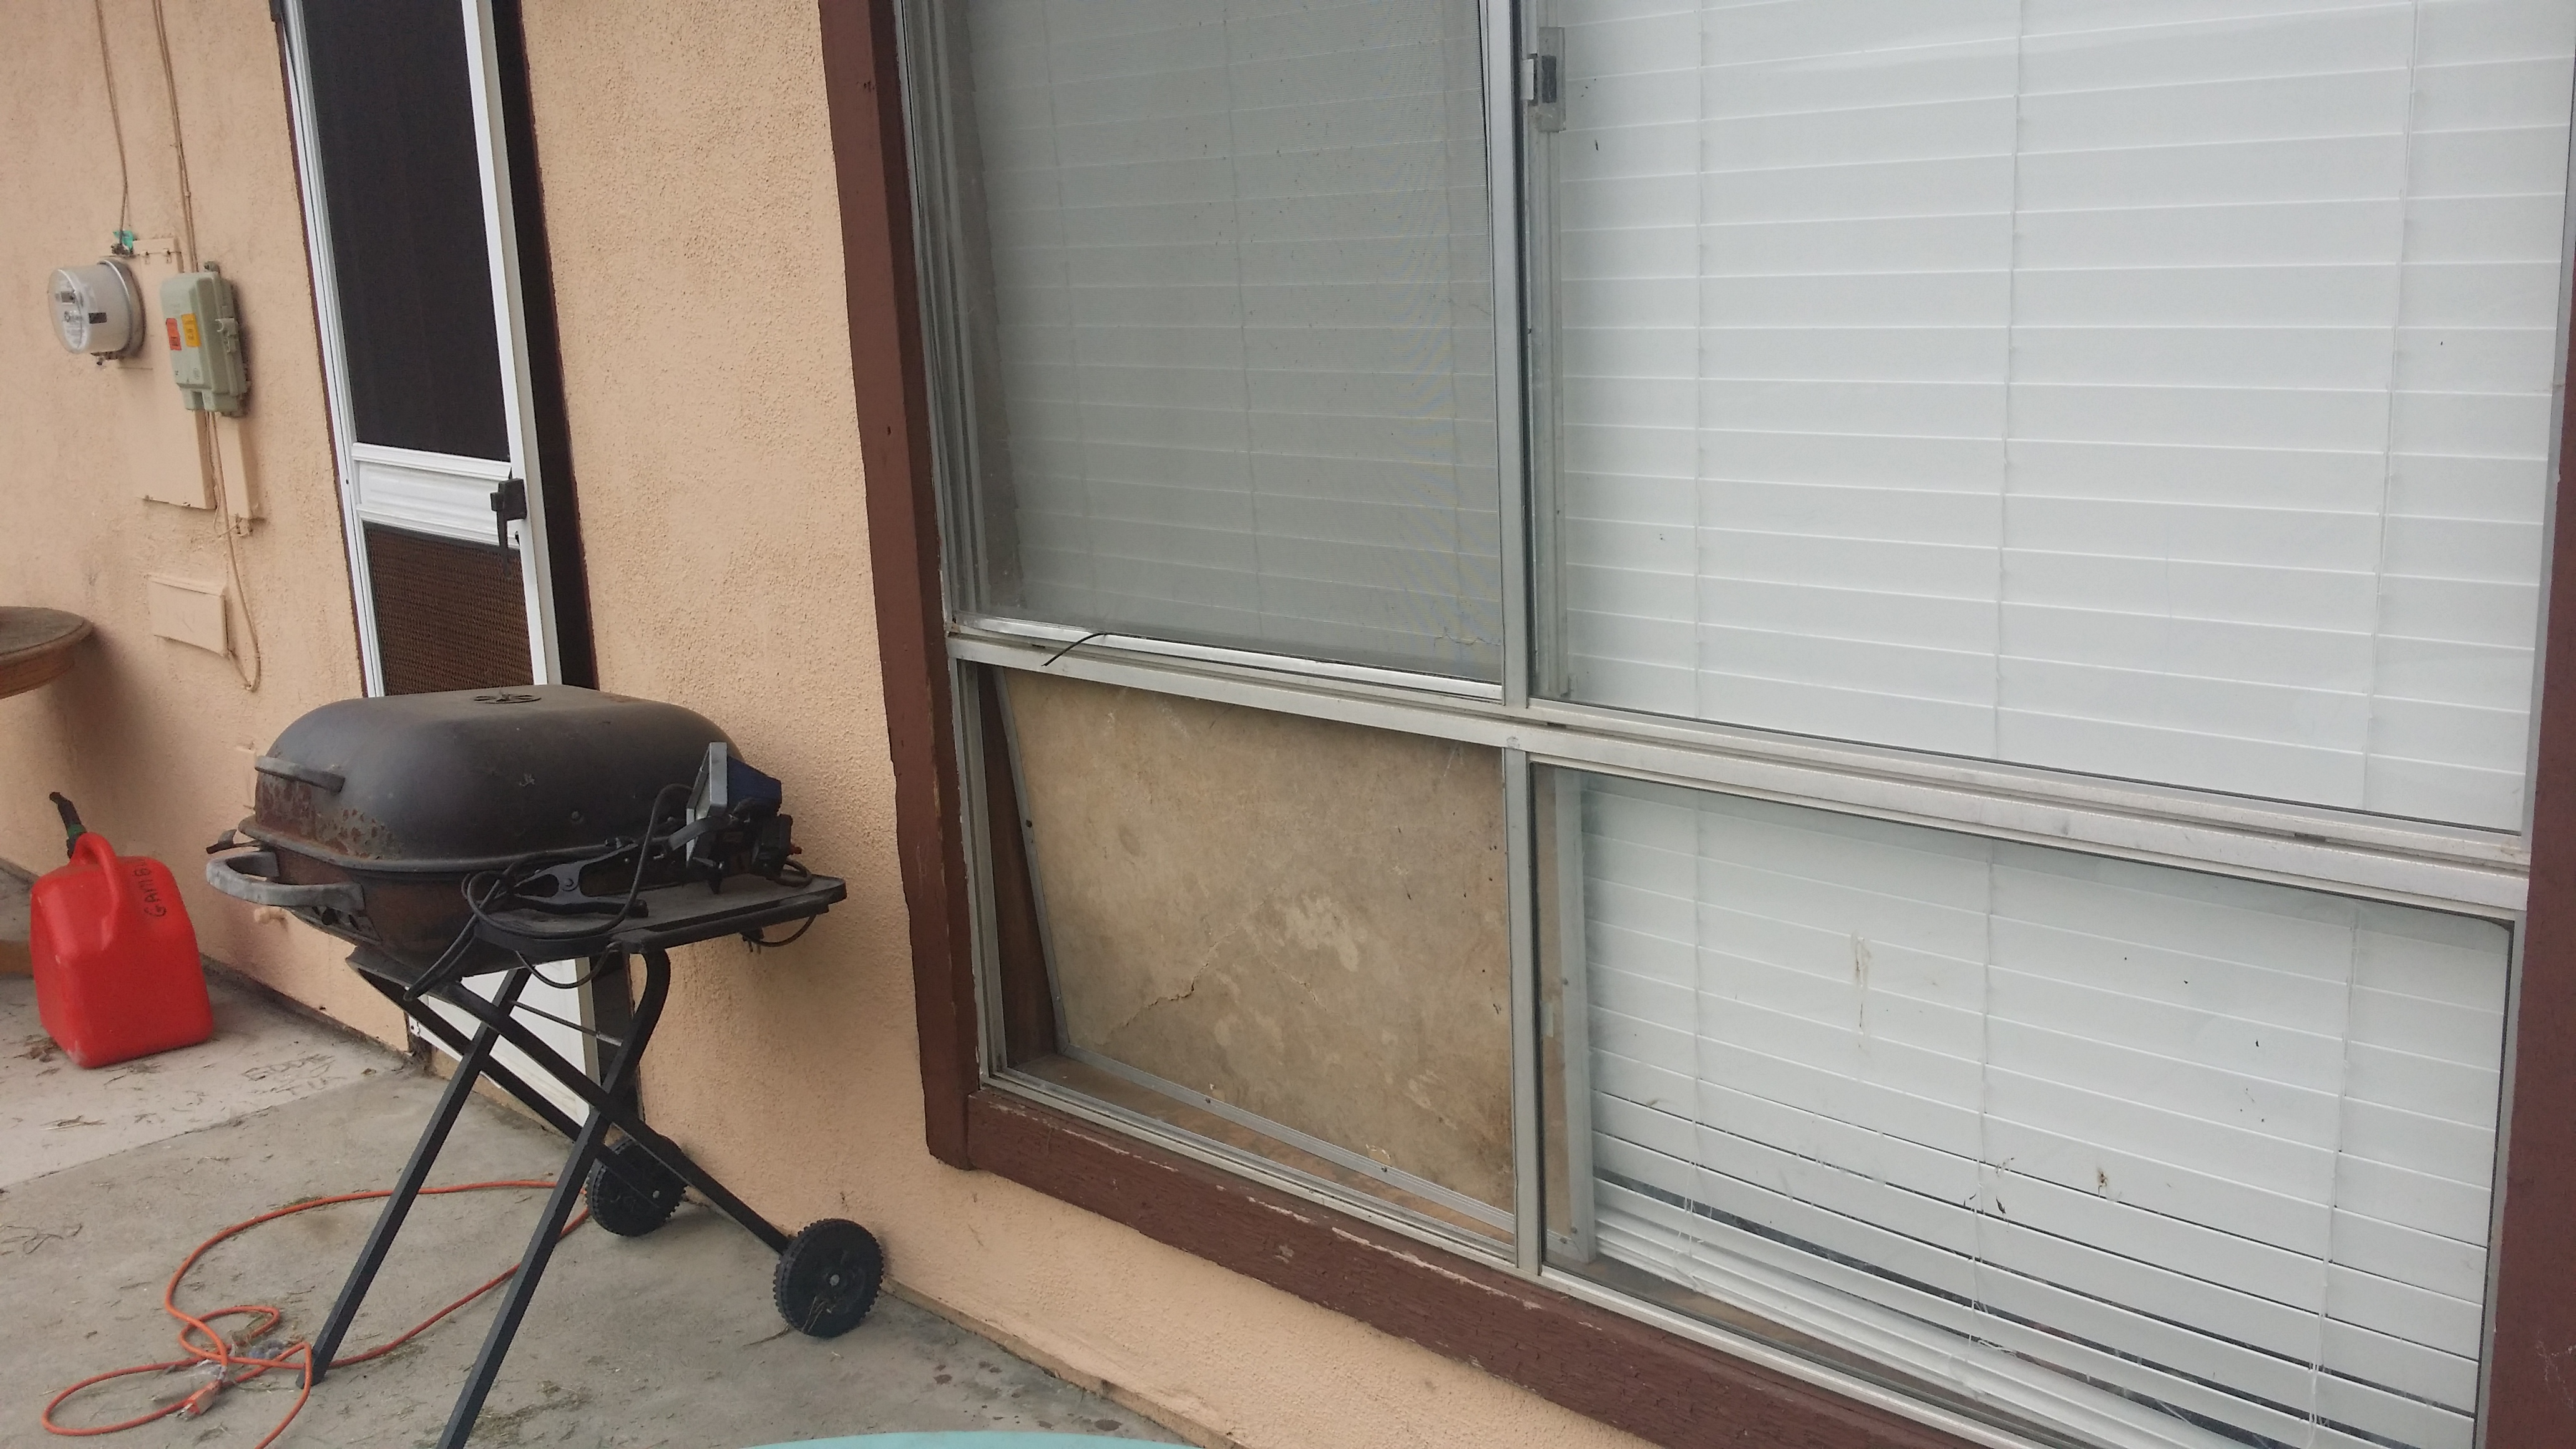 Broken window 1510 Fathom Dr Home for Sale